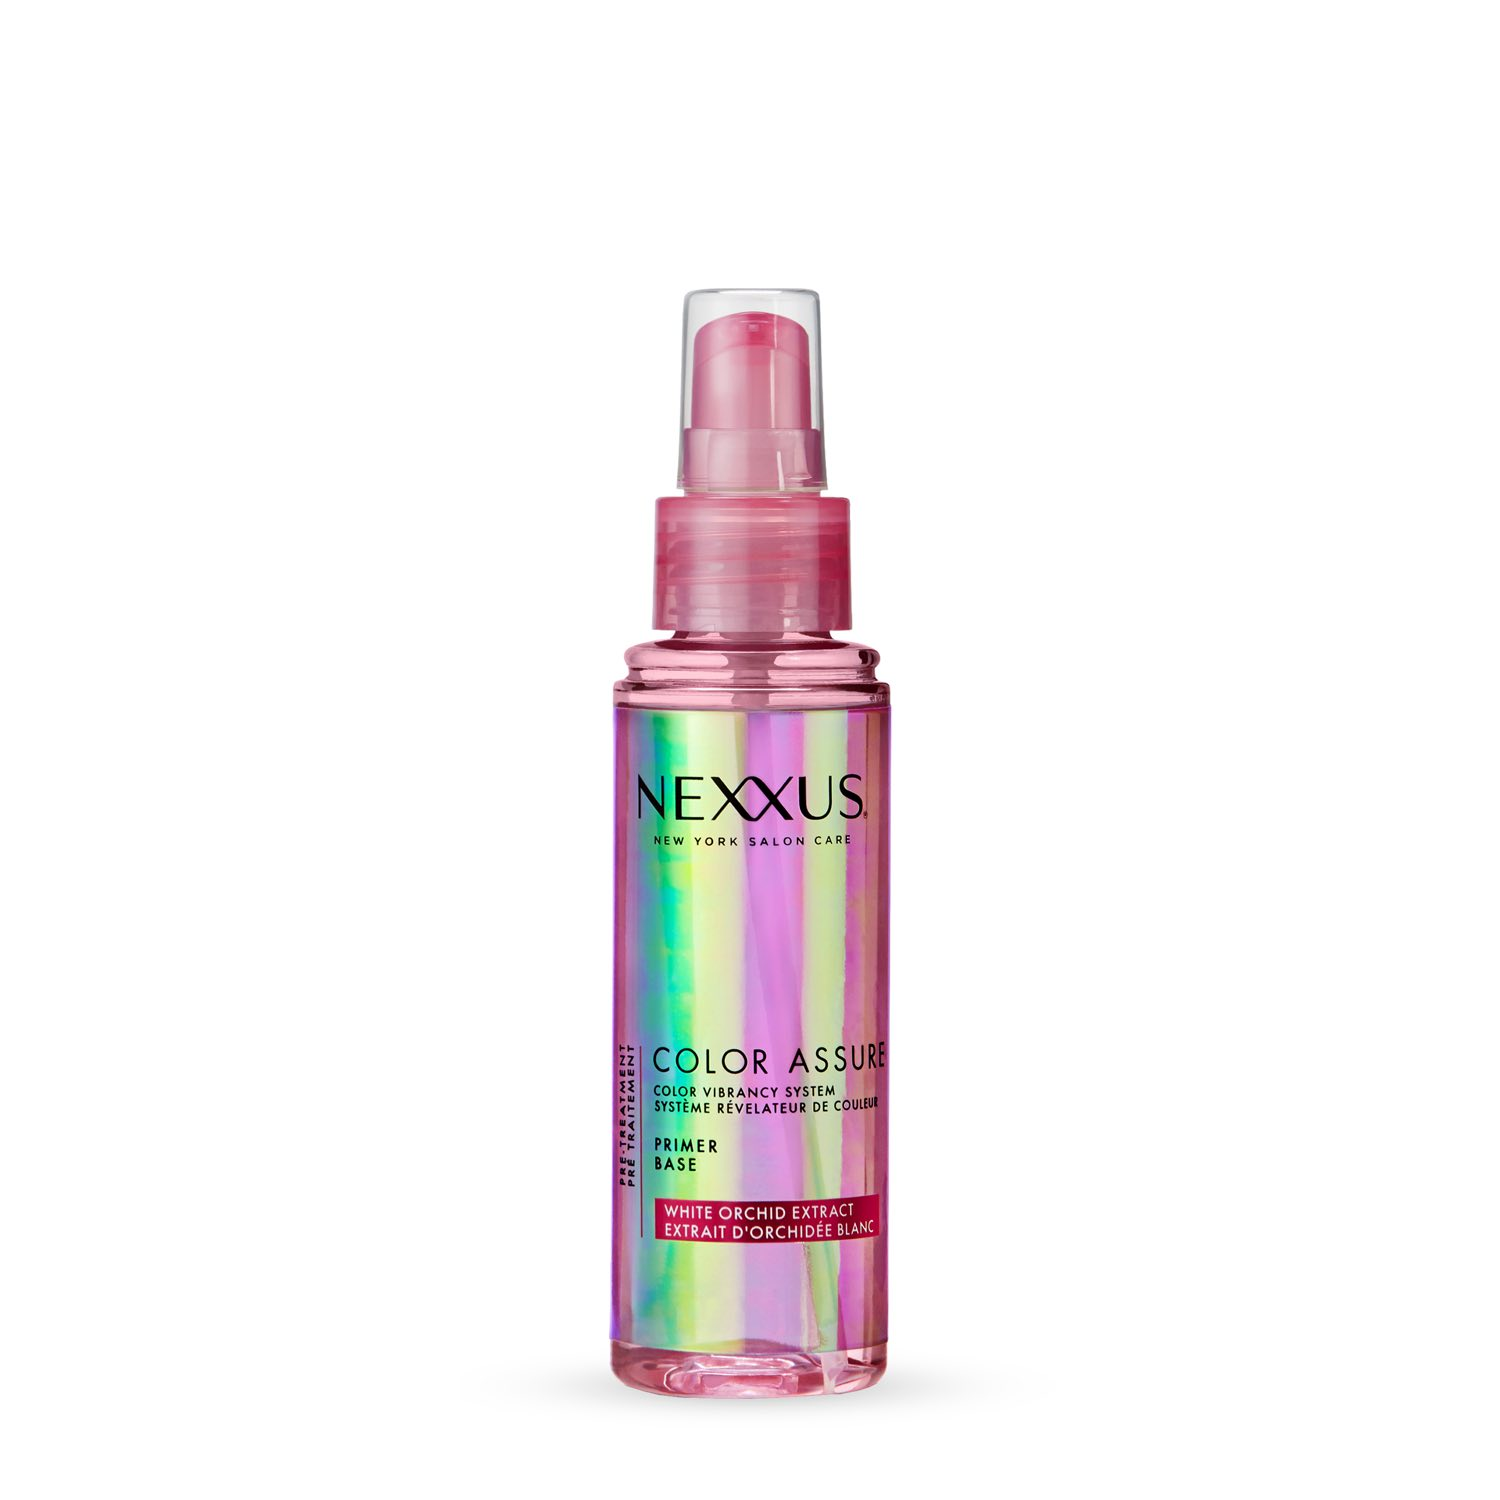 NEXXUS® COLOR ASSURE PRIMER FOR COLORED HAIR